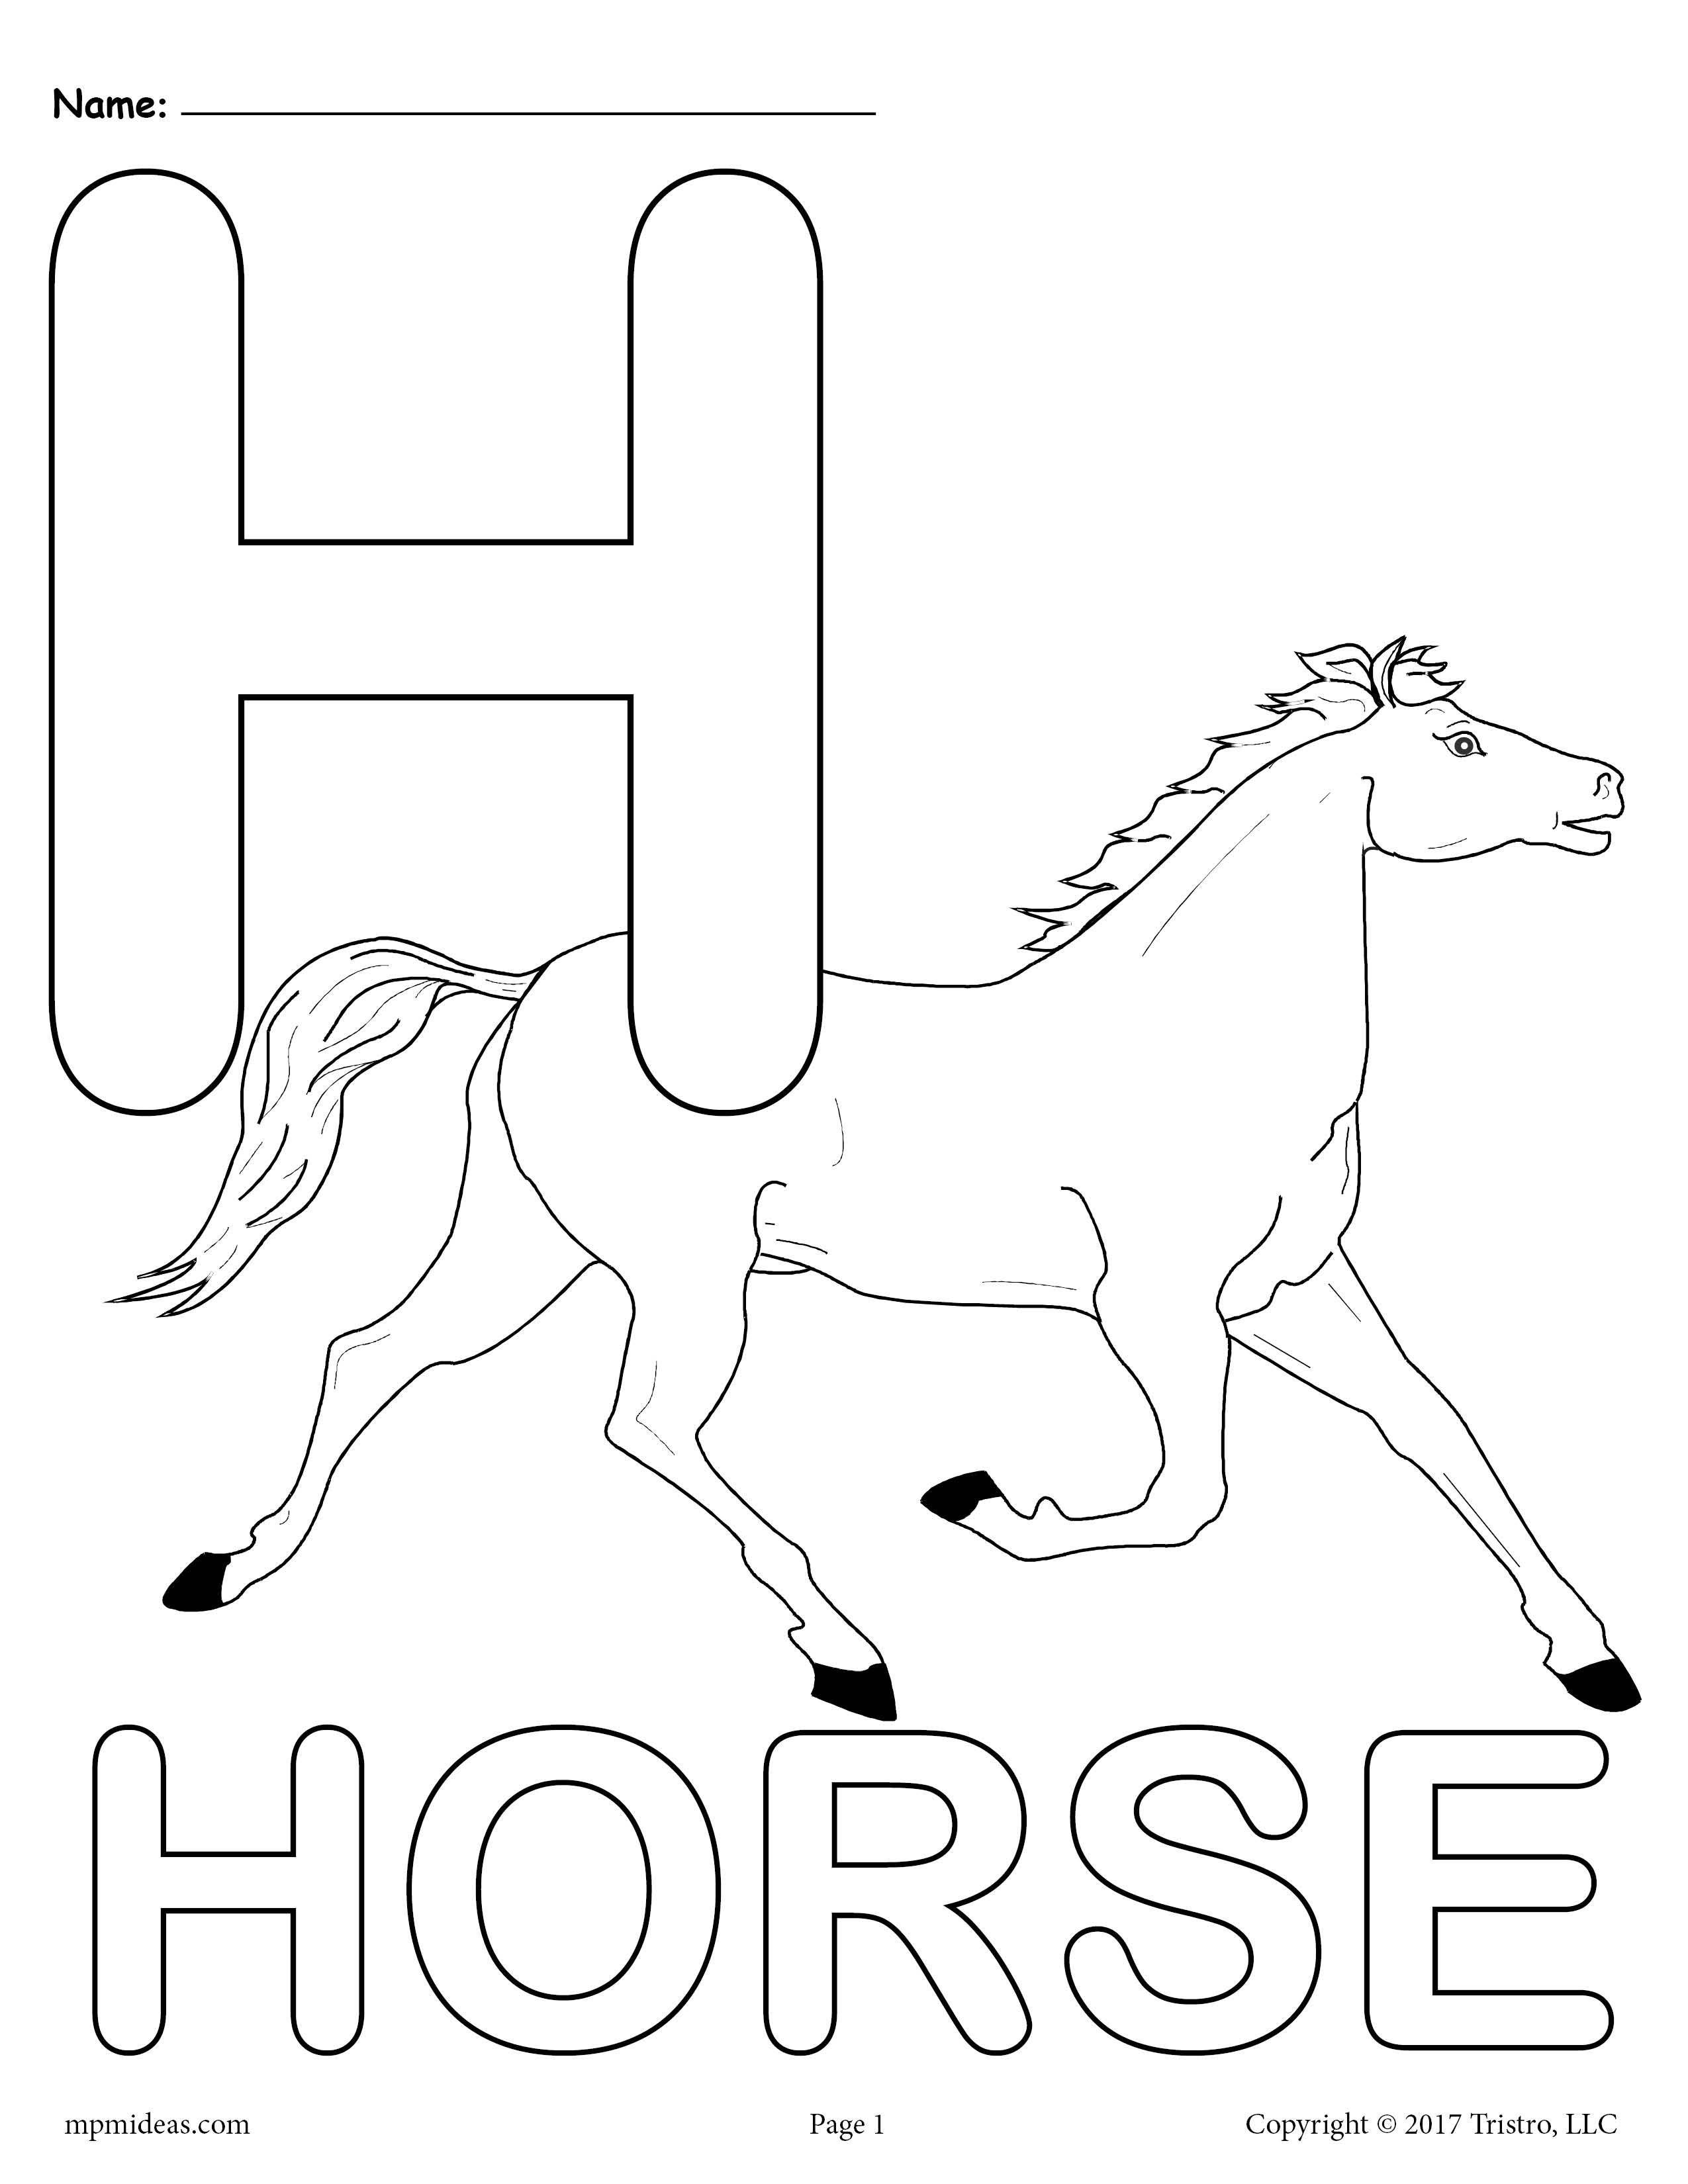 50+ H is for horse coloring page HD